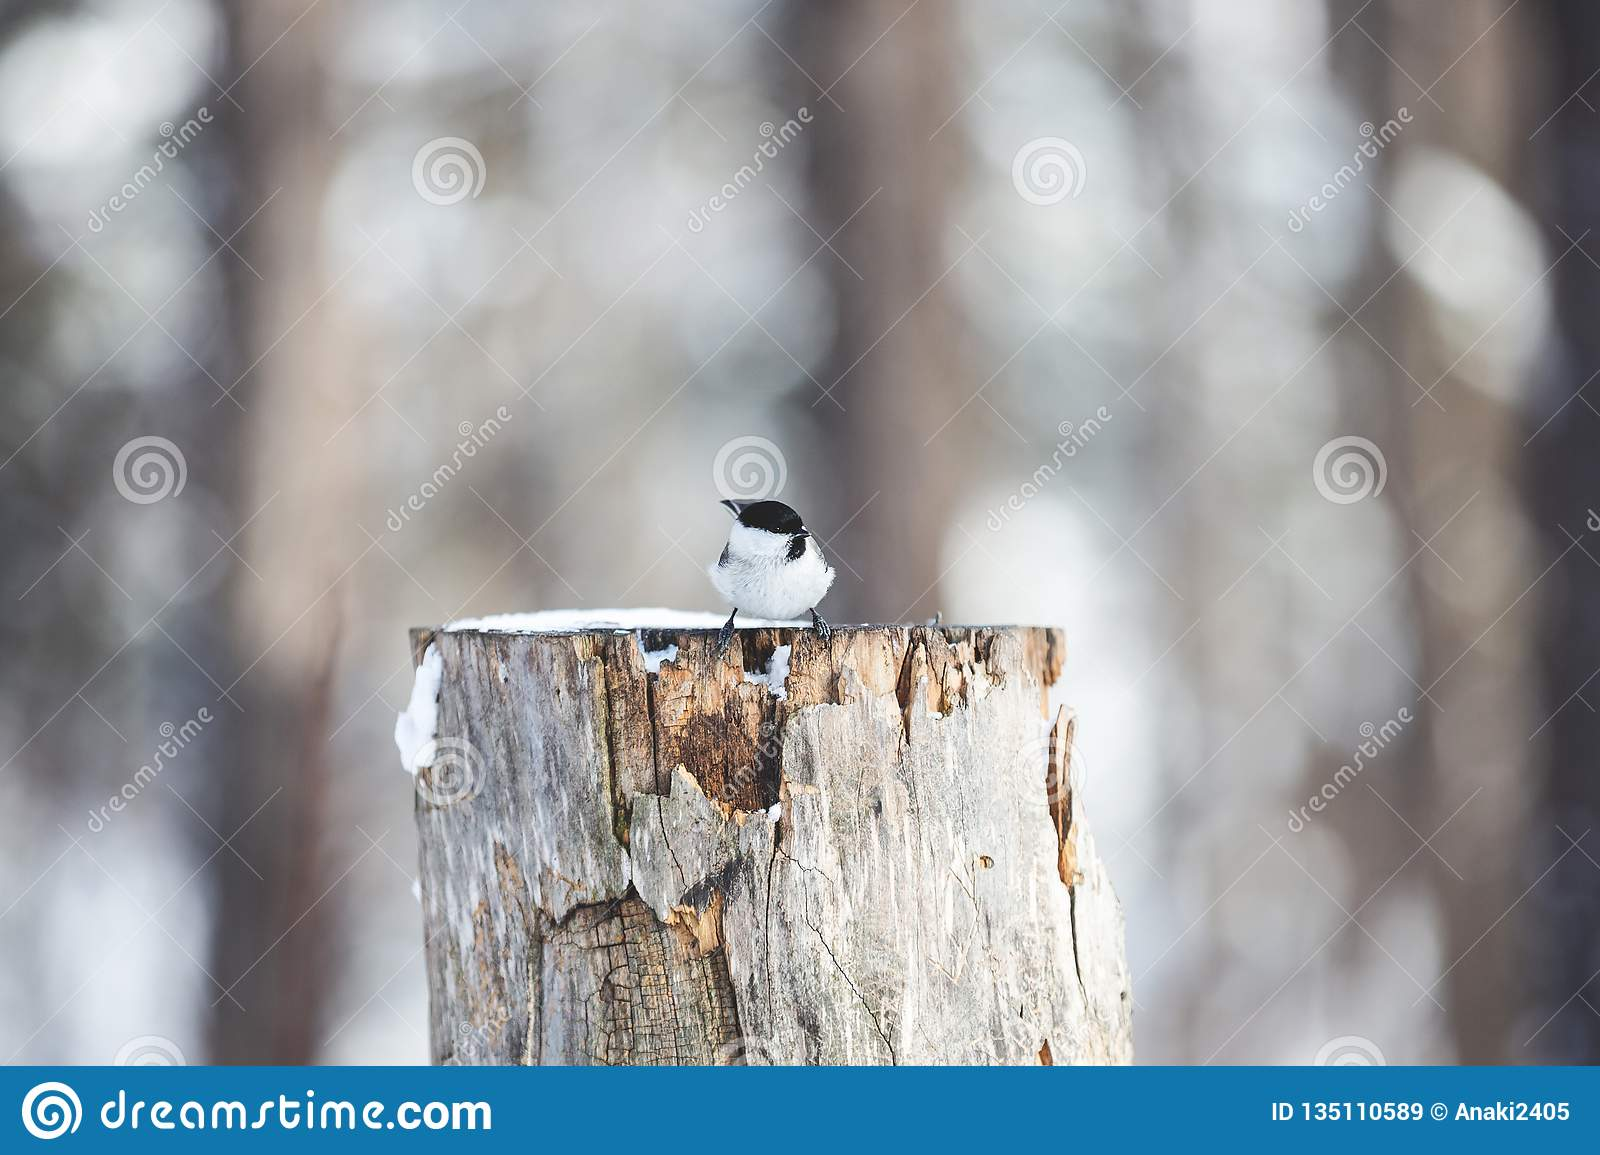 Image of tiny bird Marsh Tit or Poecile palustris sitting on the stump and pecking seeds in the winter forest